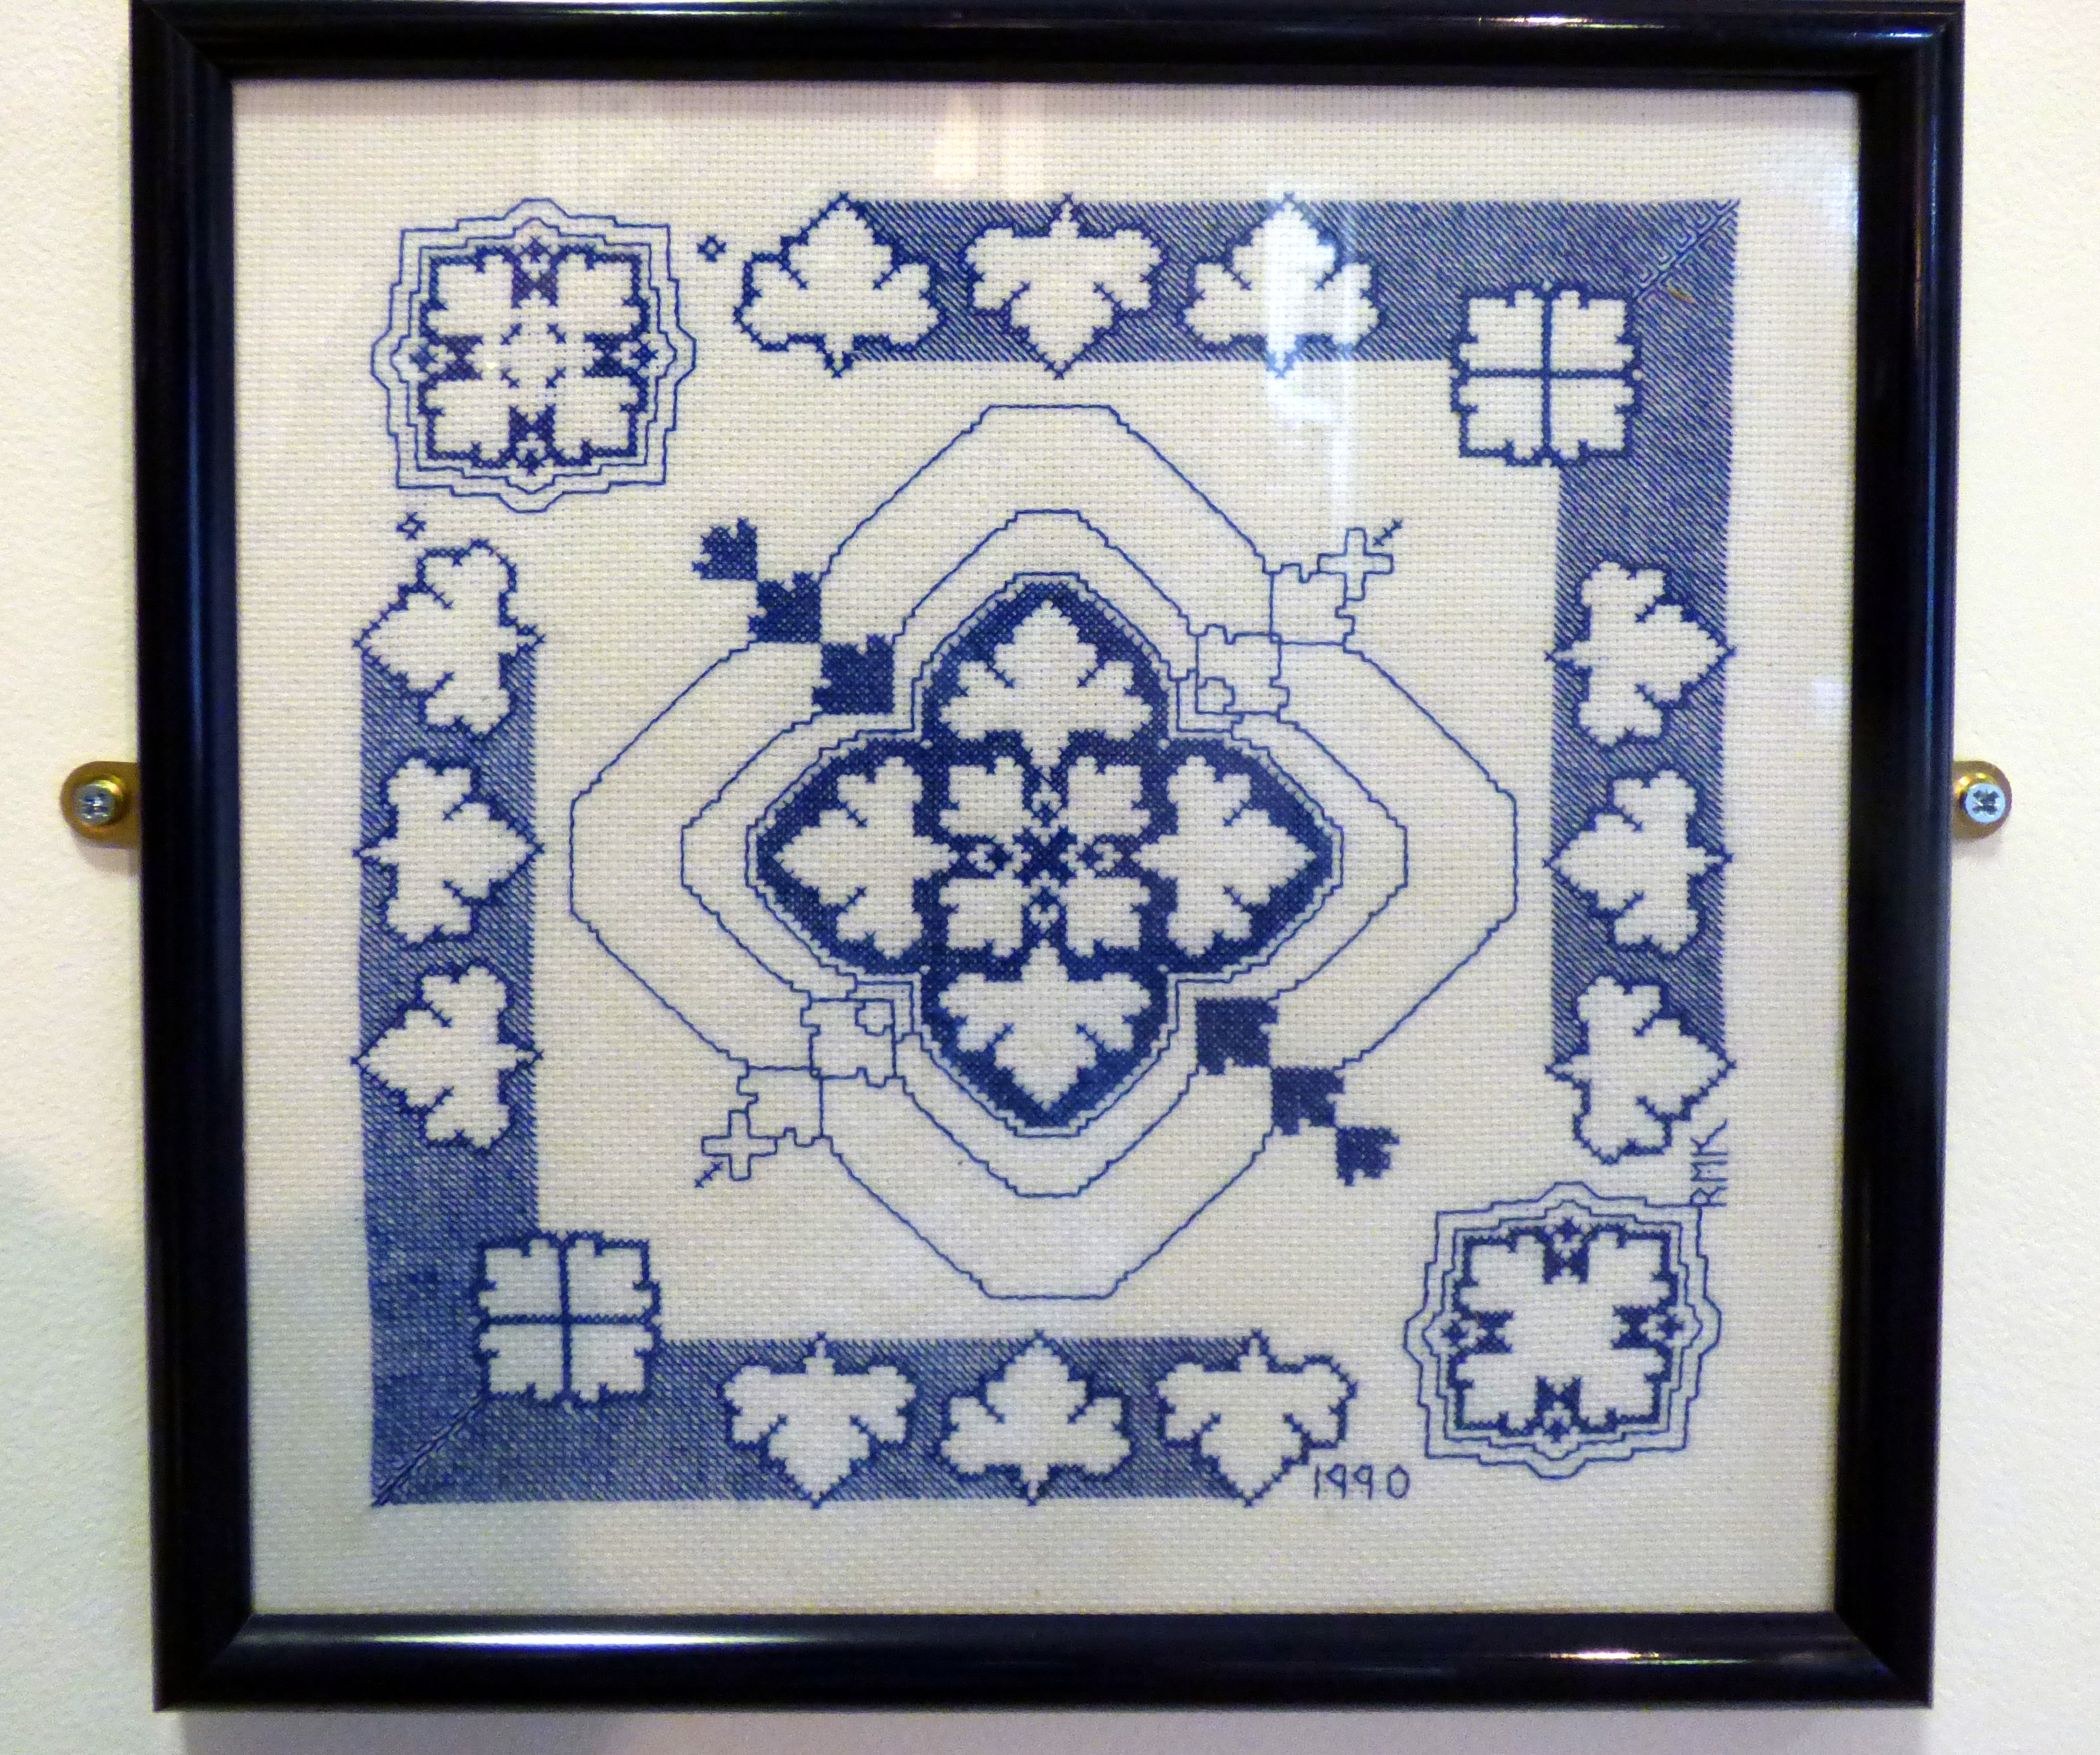 BLUE & WHITE TILE by Rita Kurzwell, 1990, assissi work